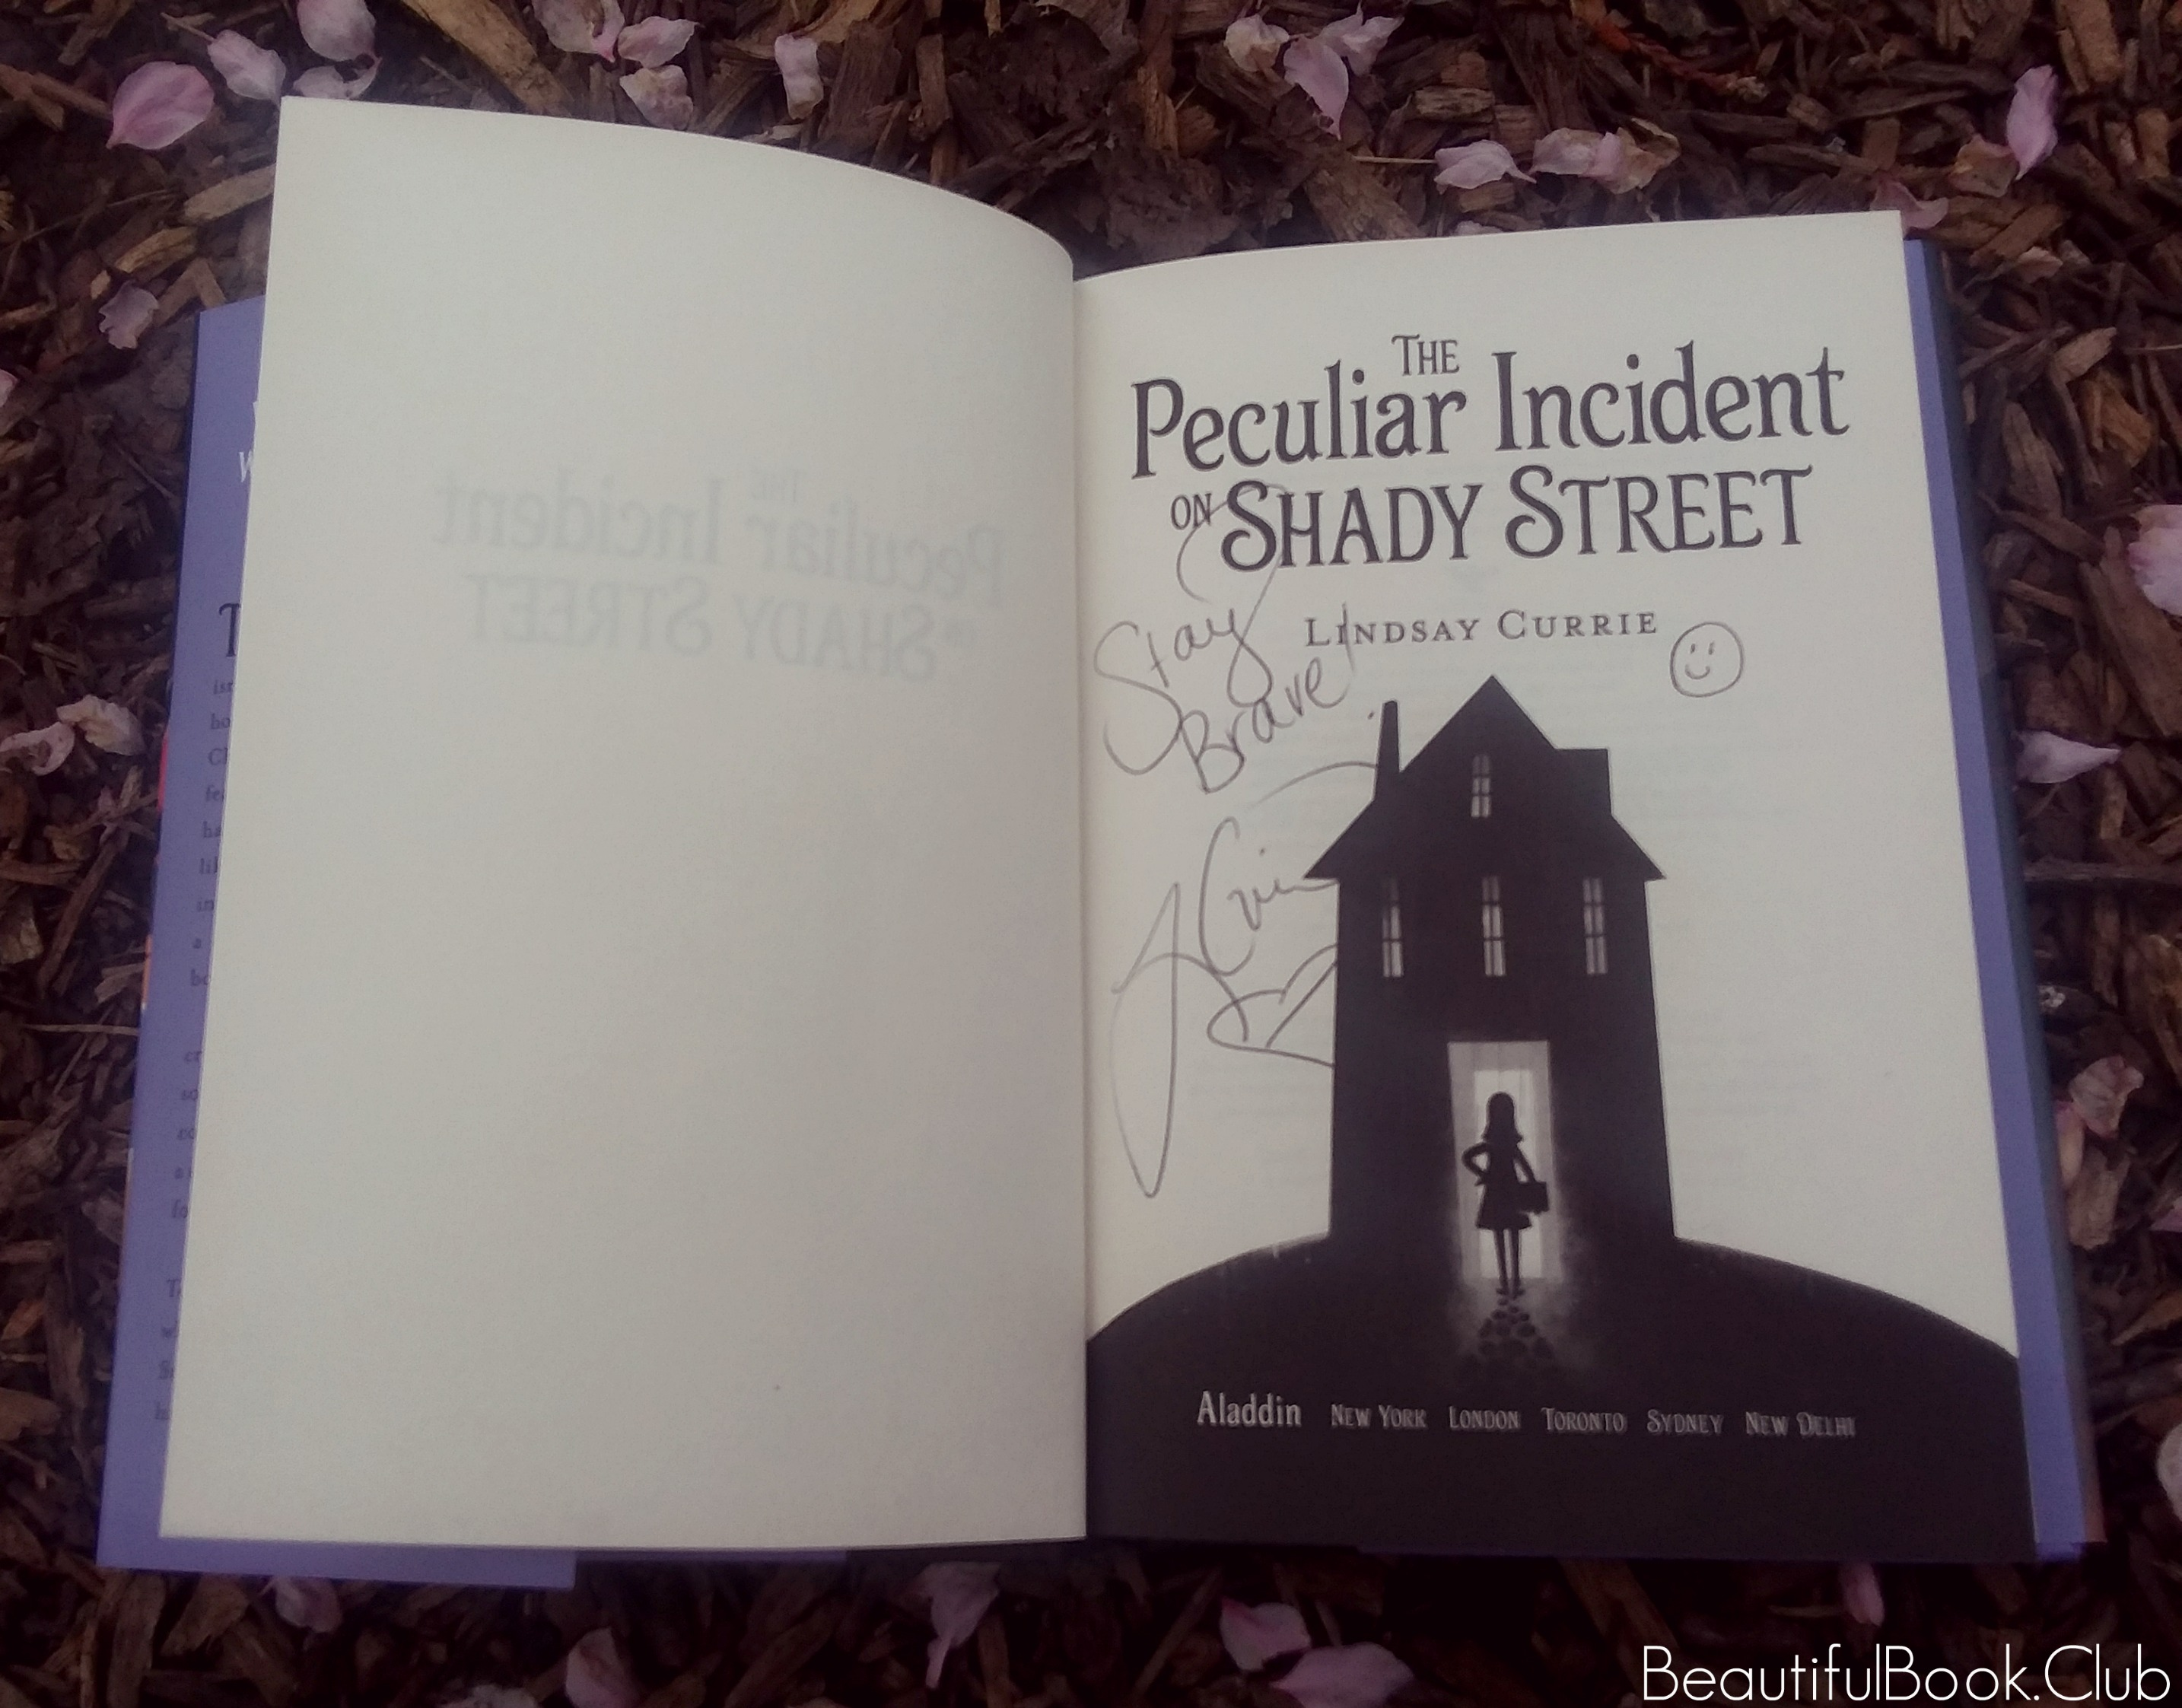 The Peculiar Incident On Shady Street by Lindsay Currie inside page signed by author